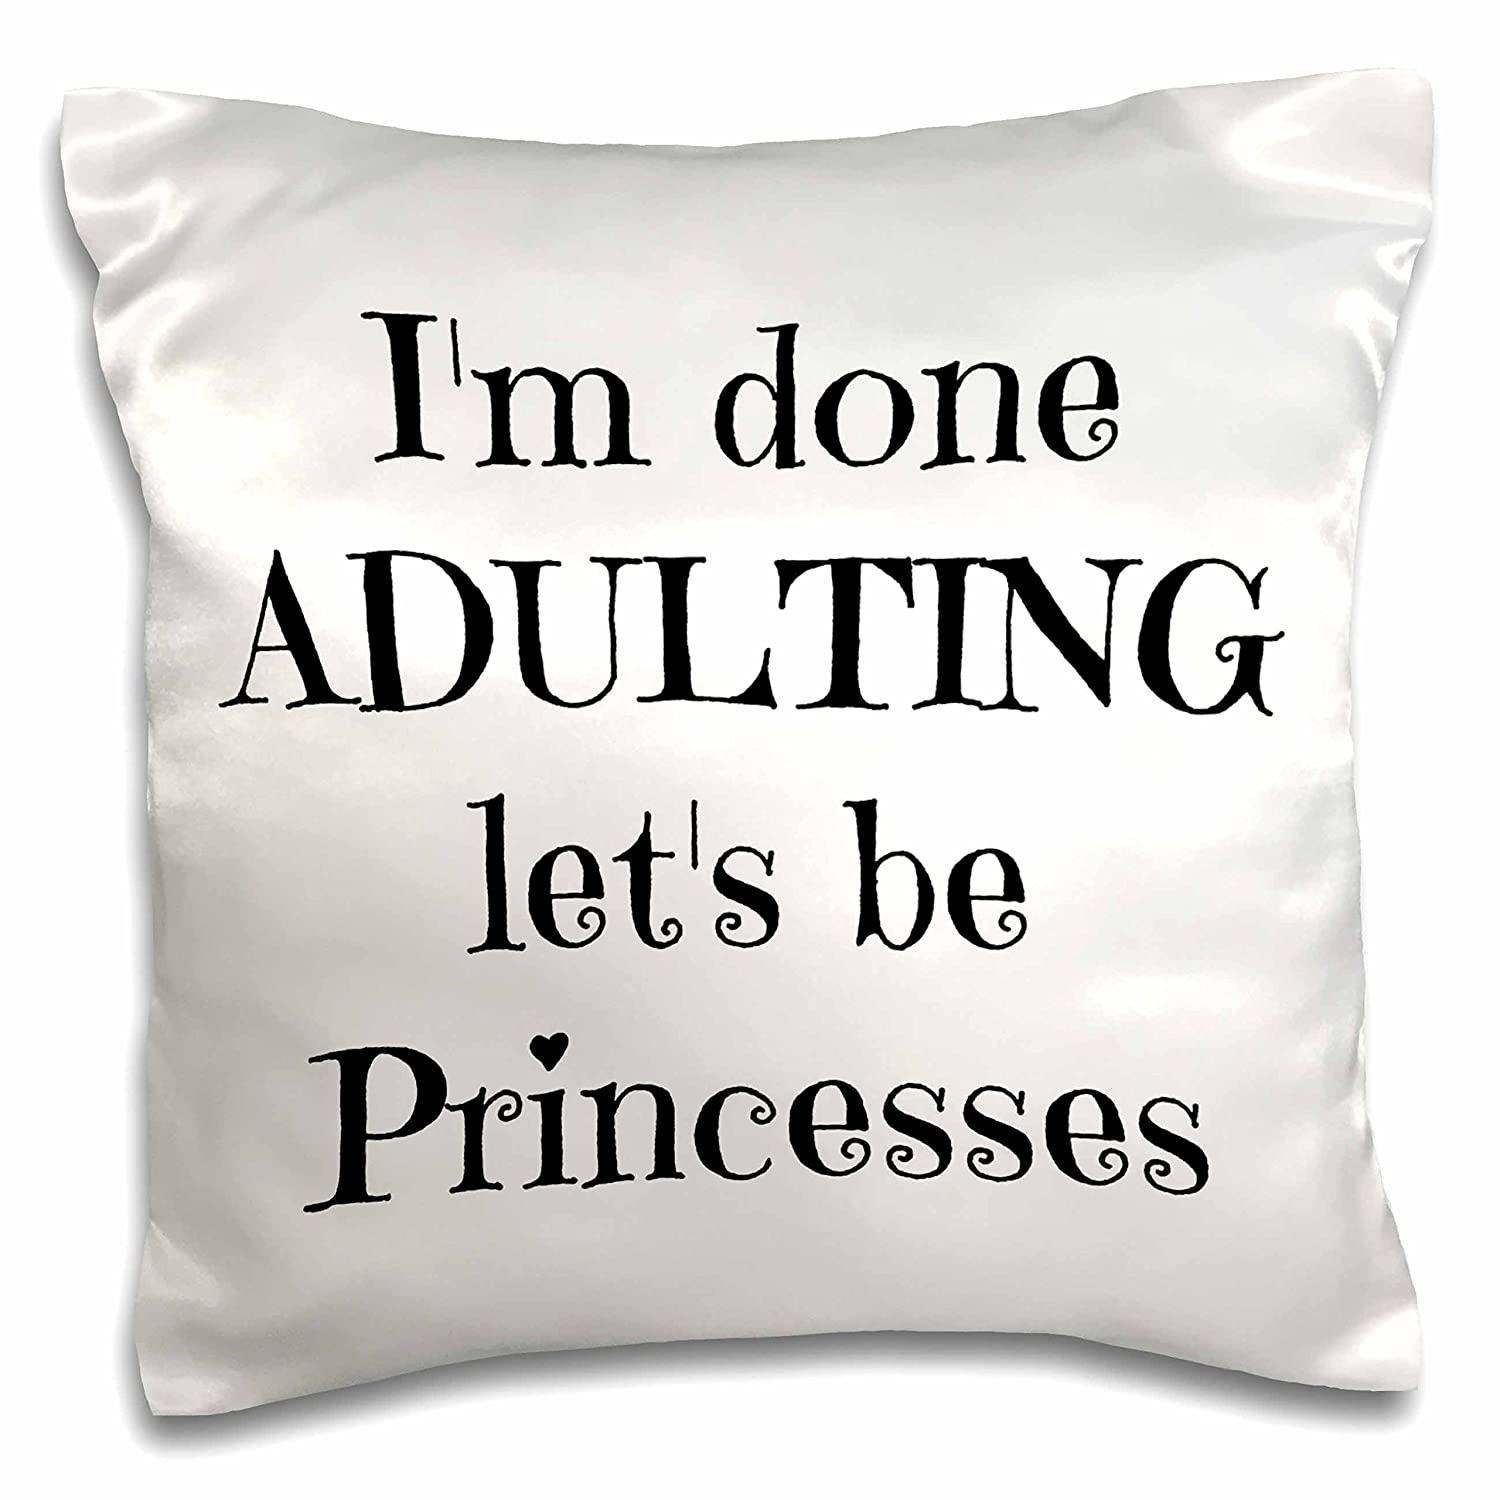 3drose BrooklynMeme面白いことわざ – Im Done Adulting Lets Be Princesses – 枕ケース 16